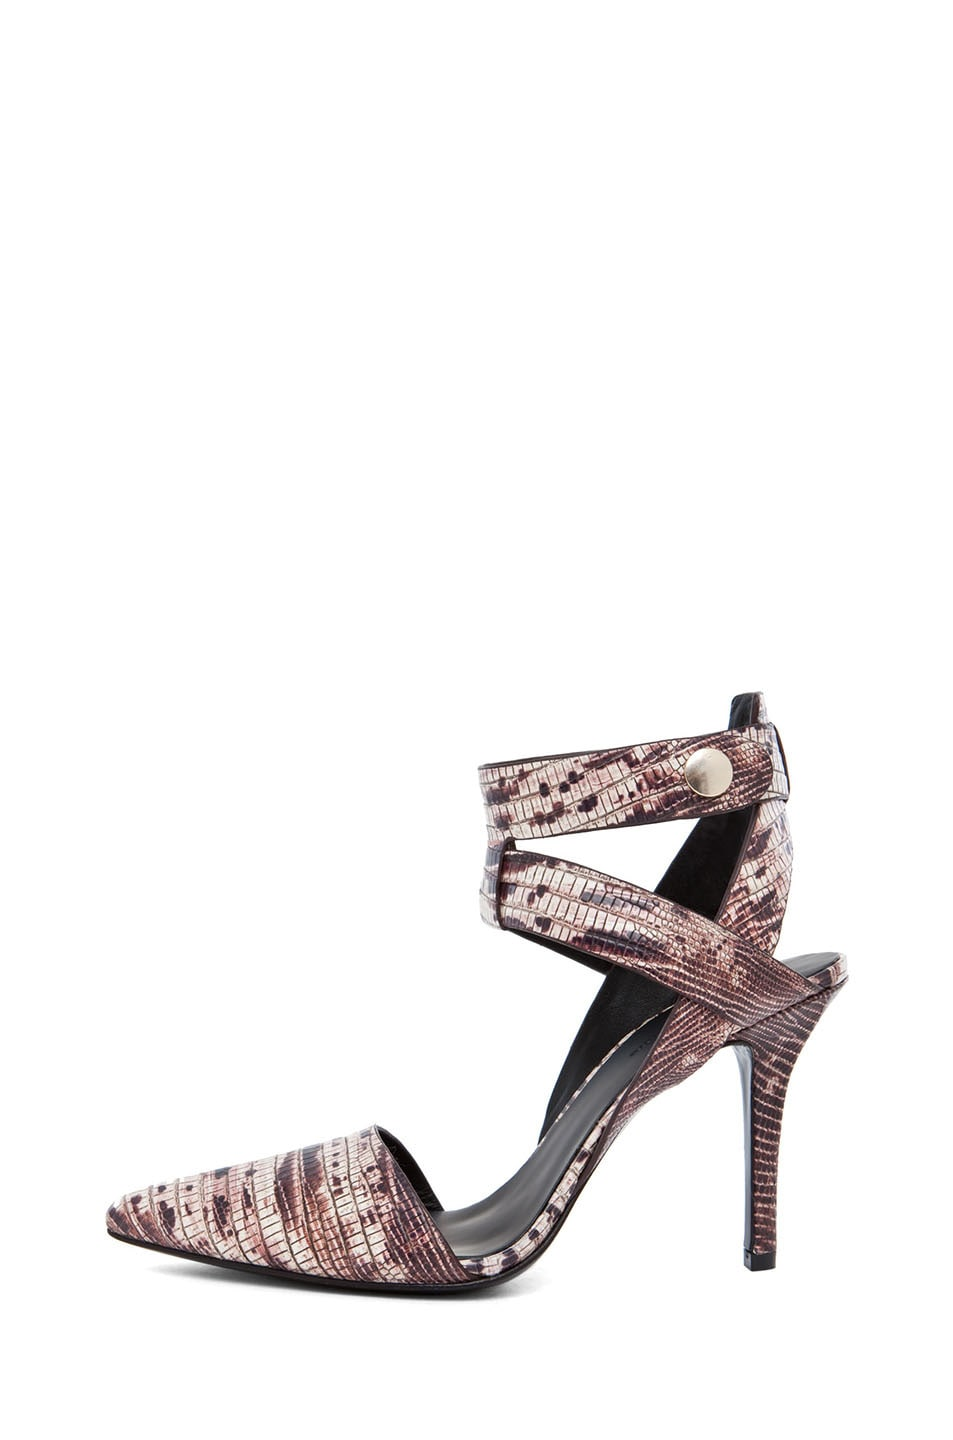 Image 1 of Alexander Wang Sonja Printed Ankle Strap Pump in Ox Blood